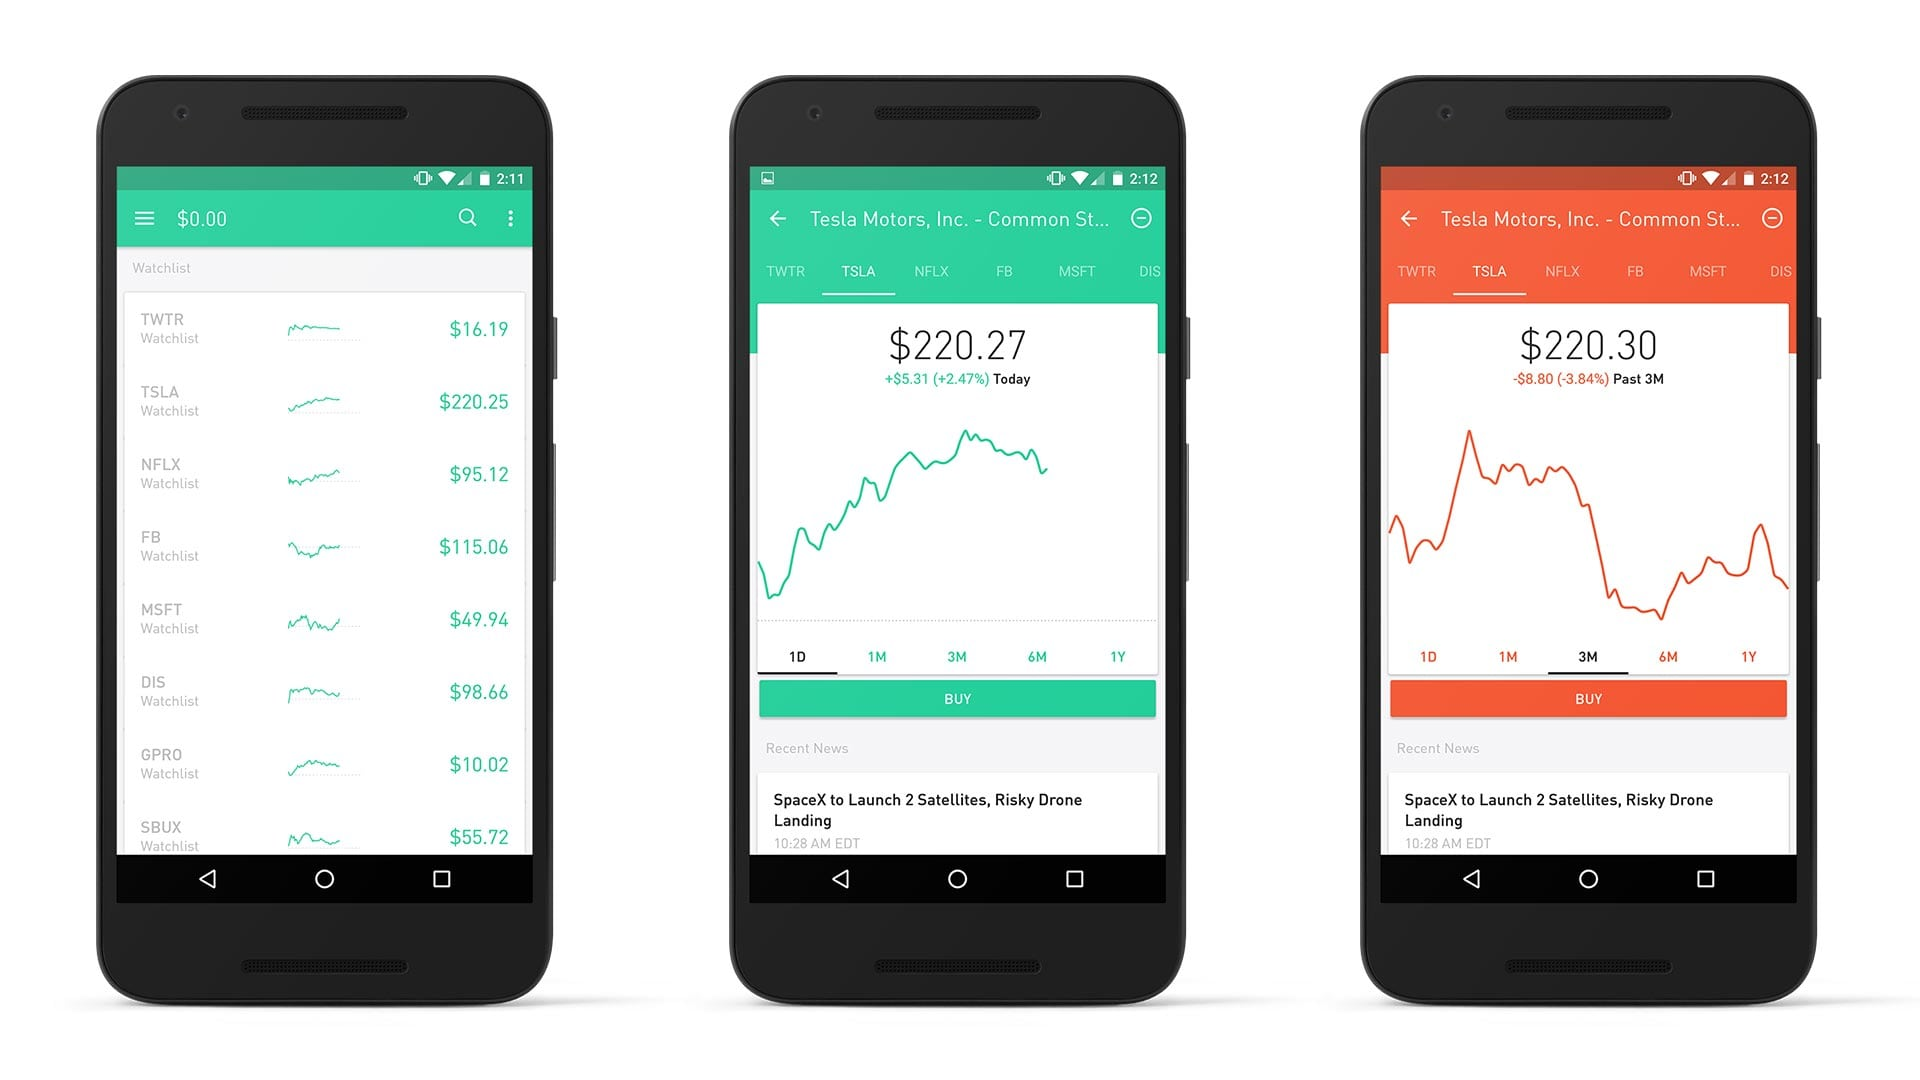 what cryptocurrencies does robinhood have